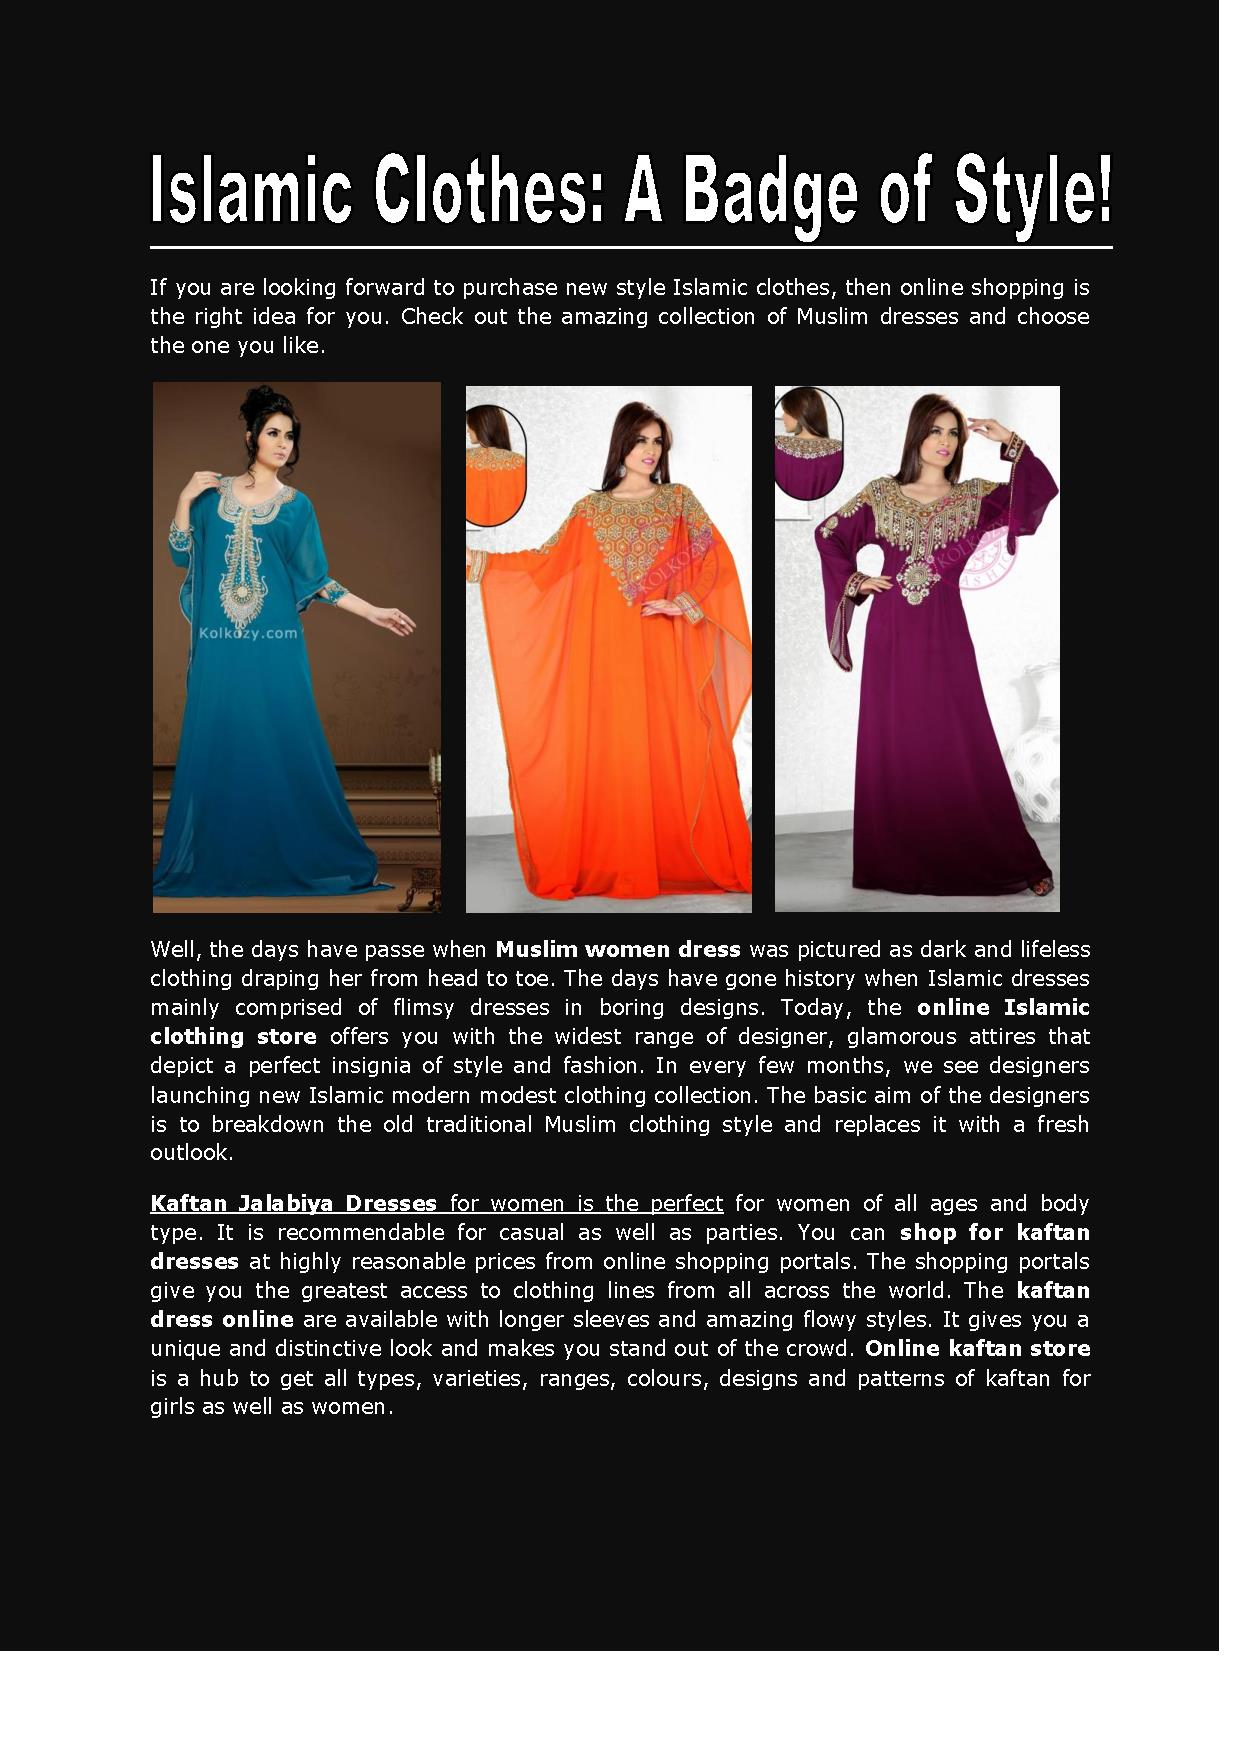 Islamic Clothes A Badge Of Style Powerpoint Presentation Ppt